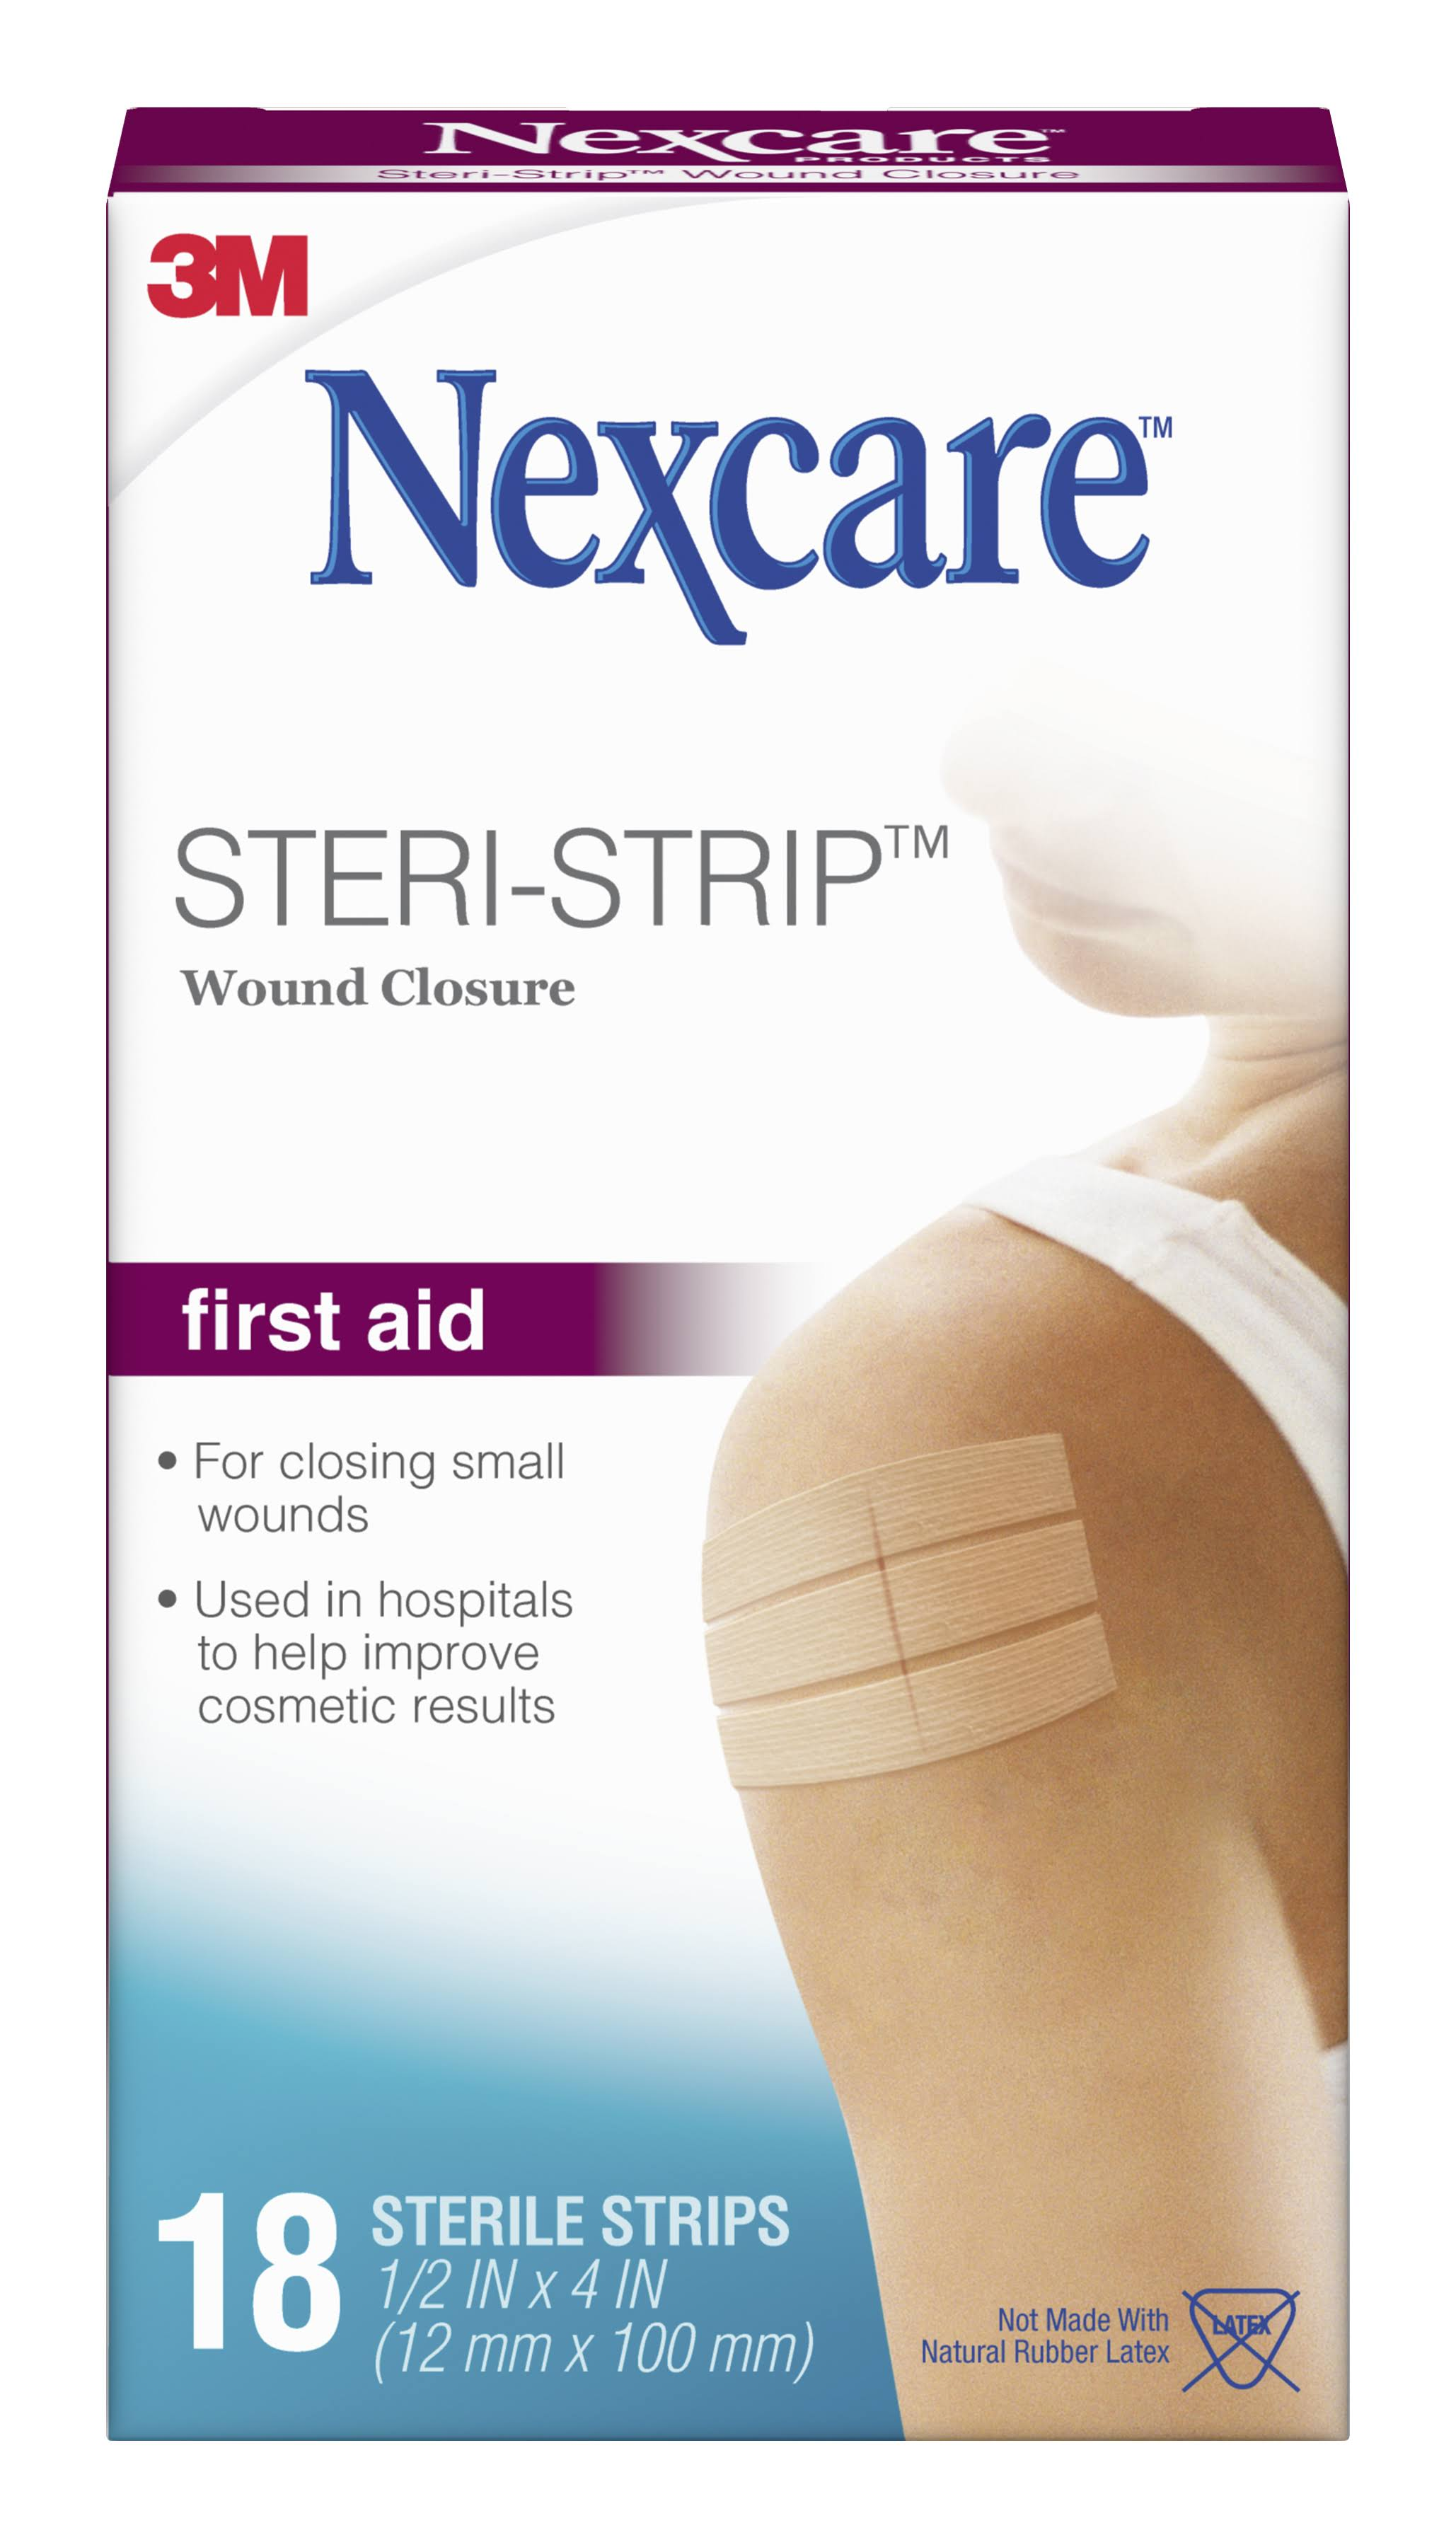 3M Nexcare Steri-Strip Skin Closure Sterile Strips - 18 Strips